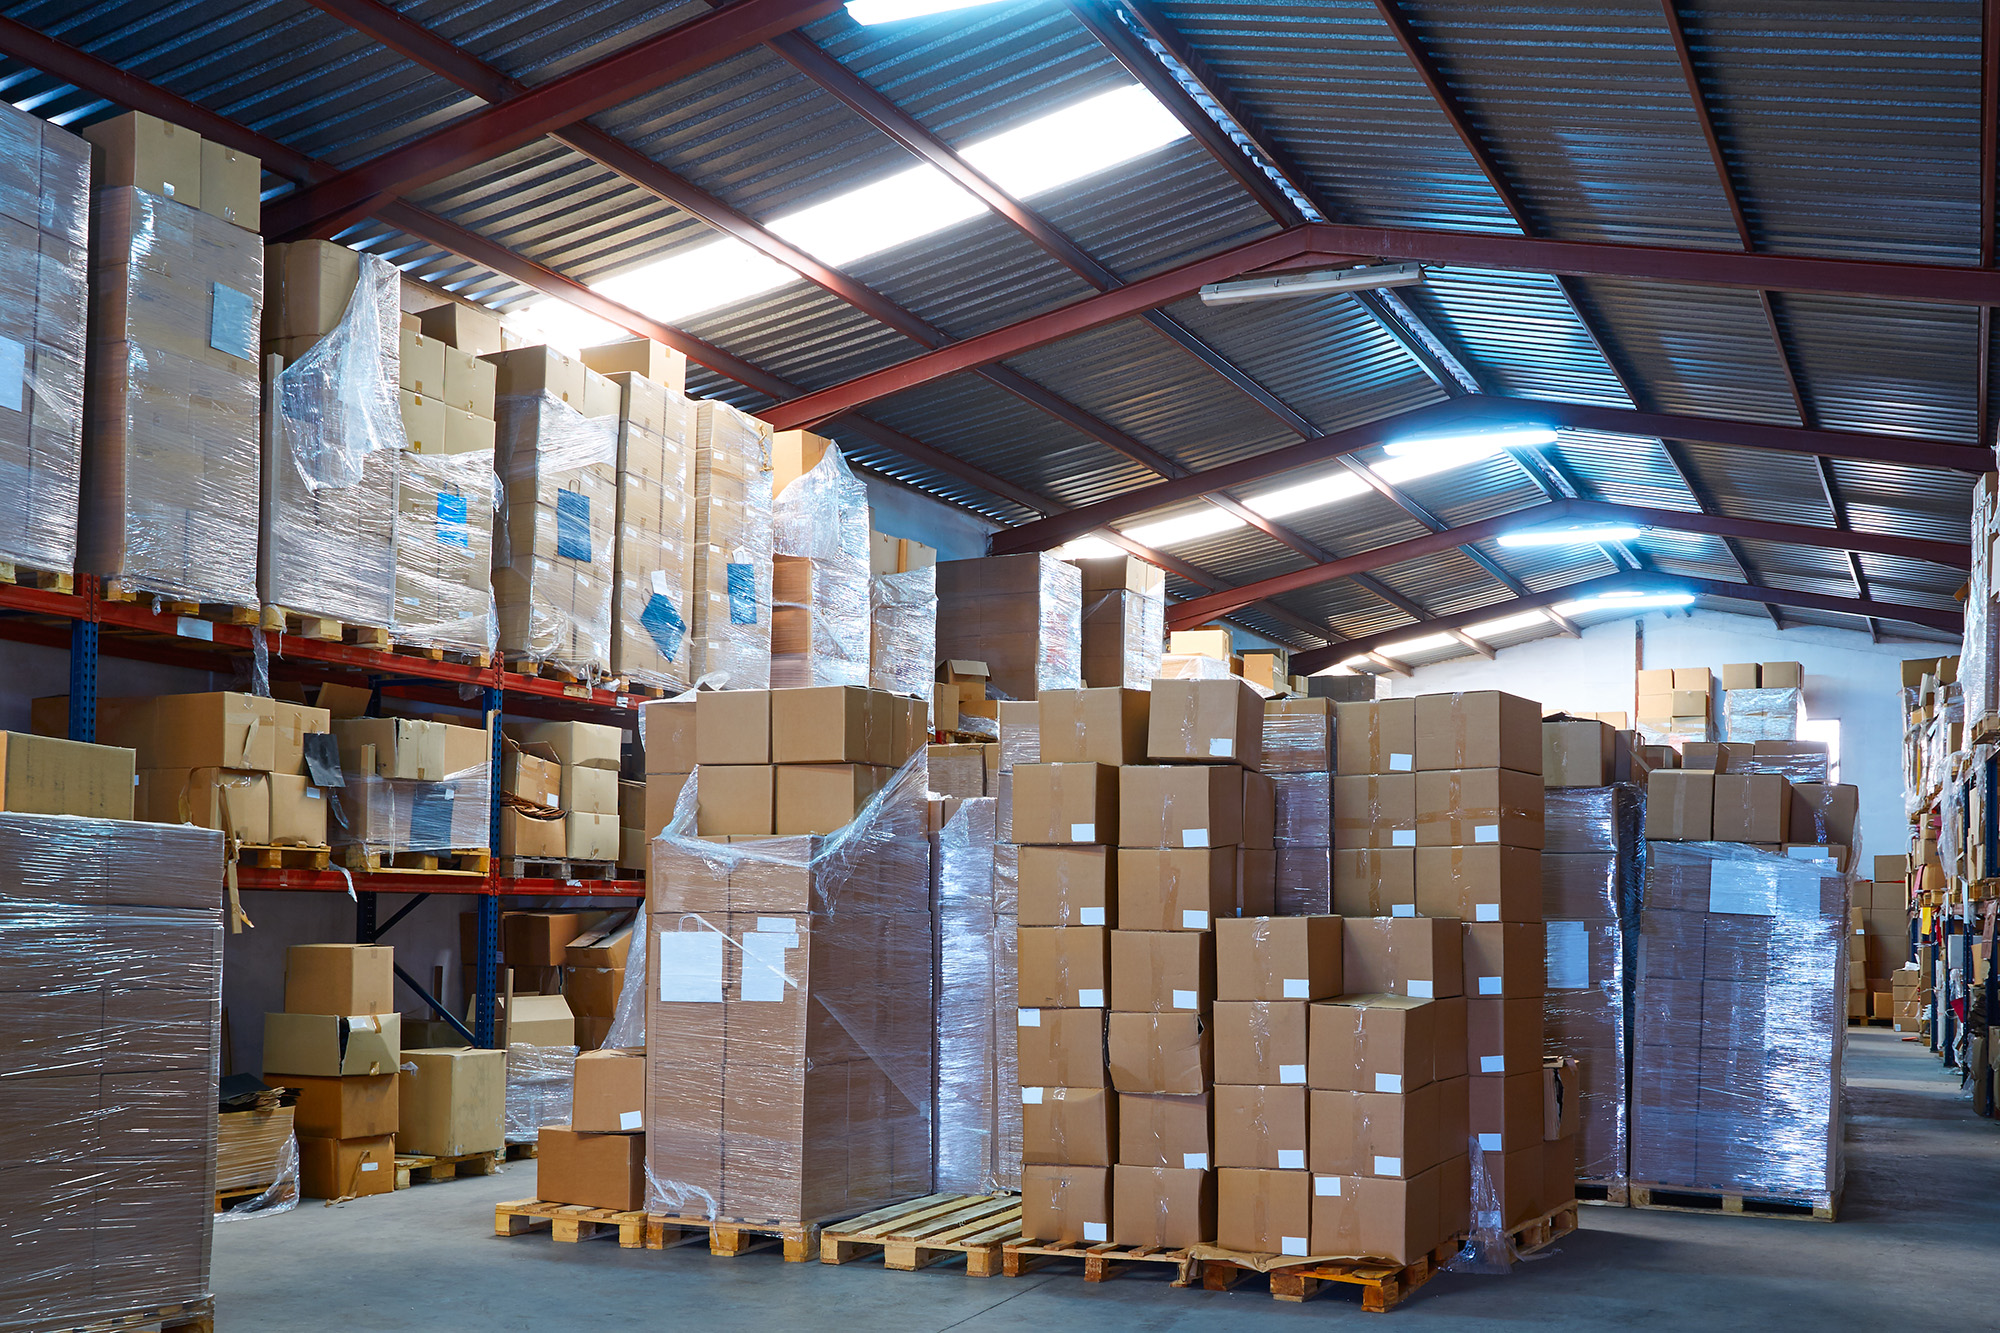 Stacks of boxes inside of a storage warehouse.